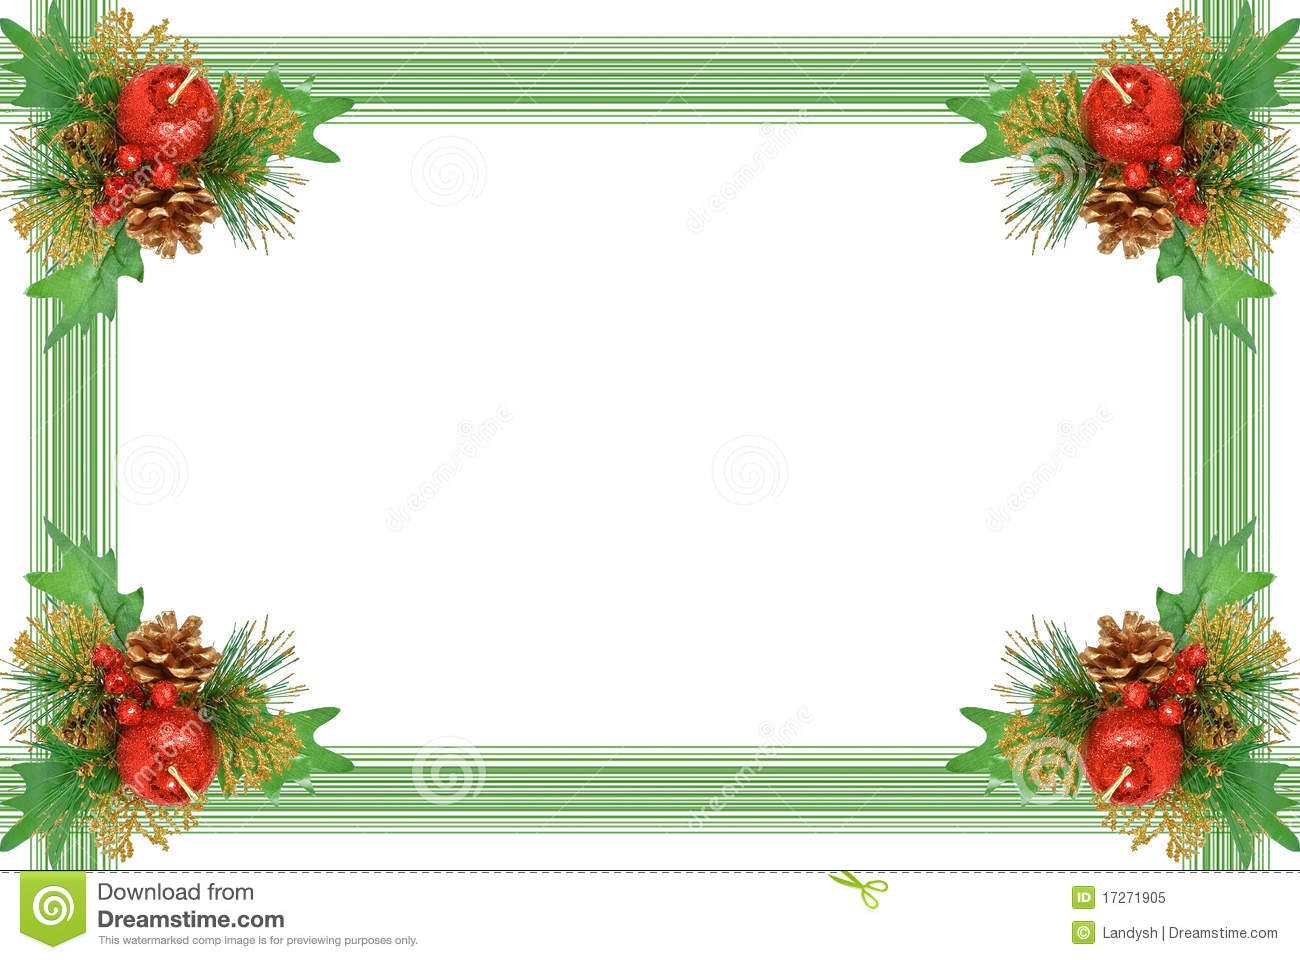 Picture frame christmas ornaments - Christmas Frame Ornament With Green Branch Royalty Free Stock Photo